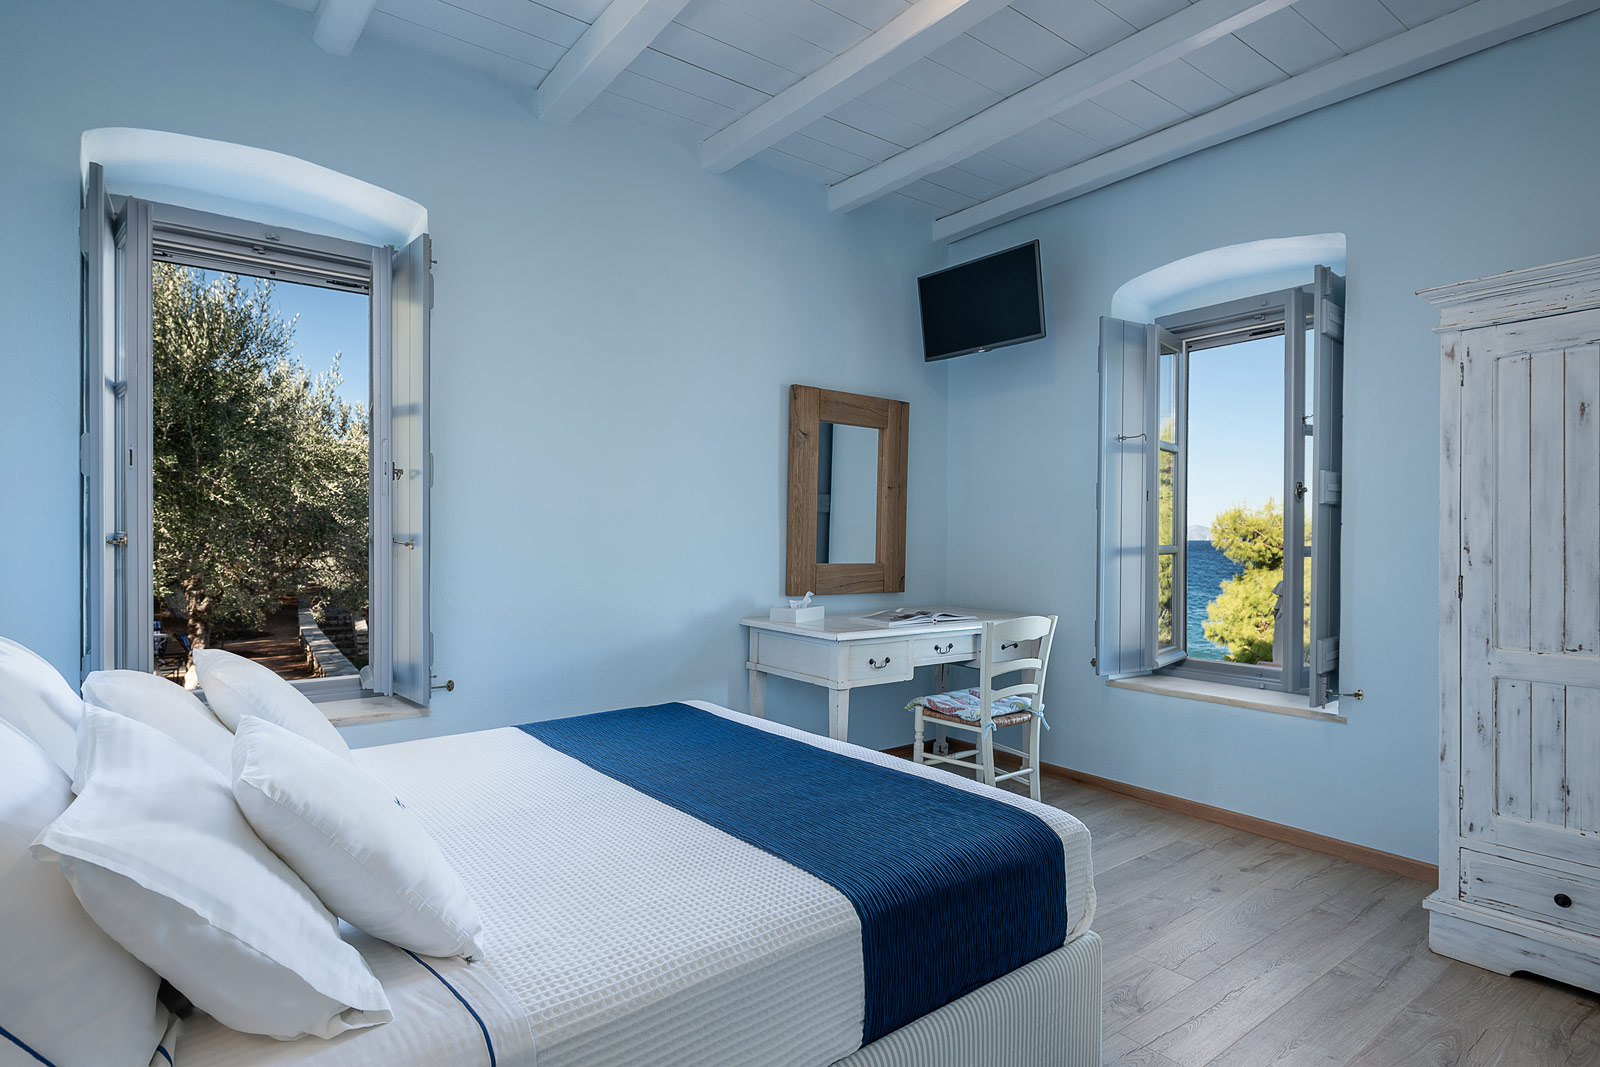 Summer suite bedroom and sea view from two windows.